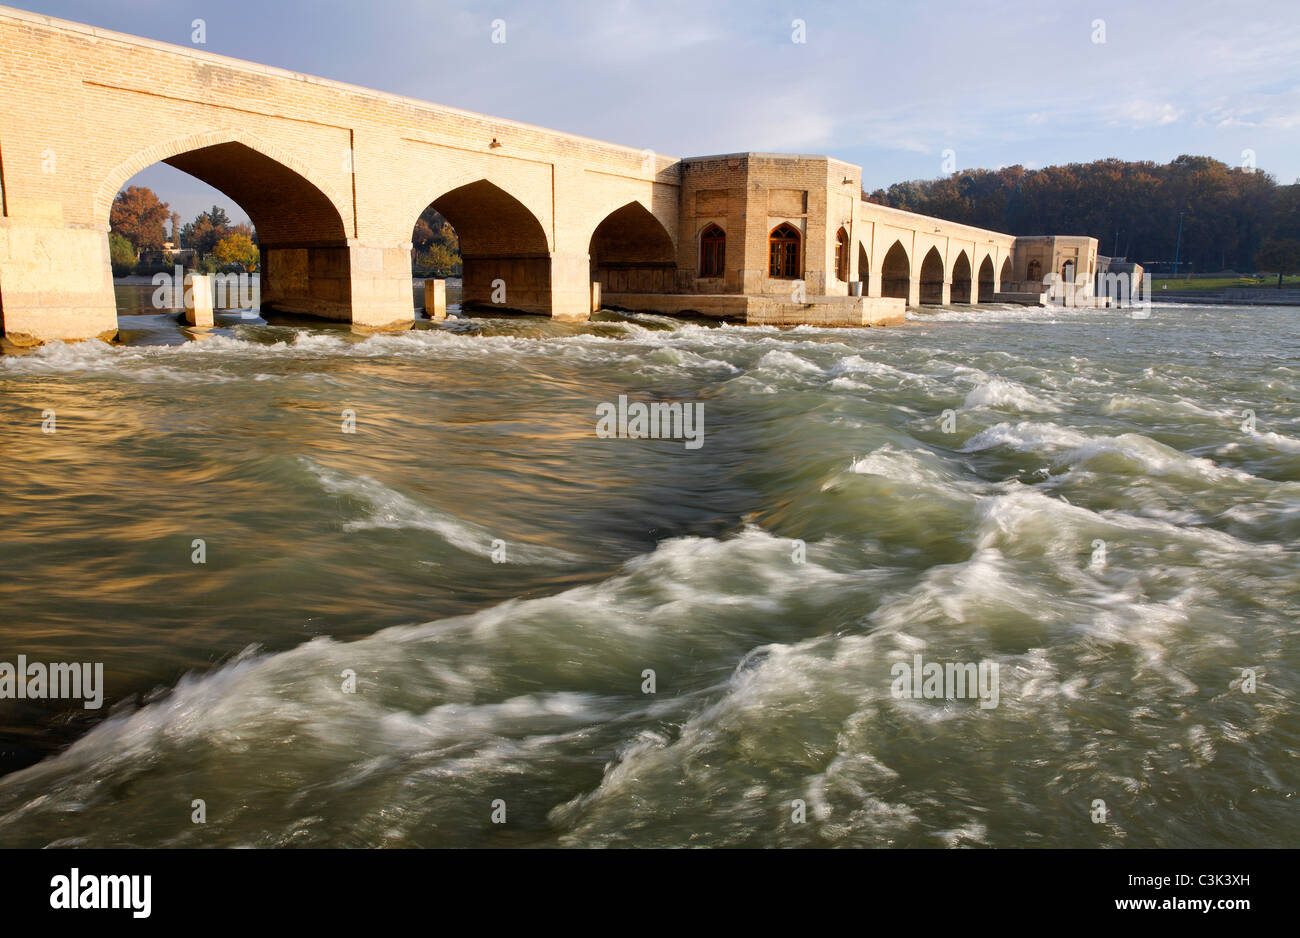 Iran - Esfahan - The Pol bridge over the River Zayandeh - Stock Image